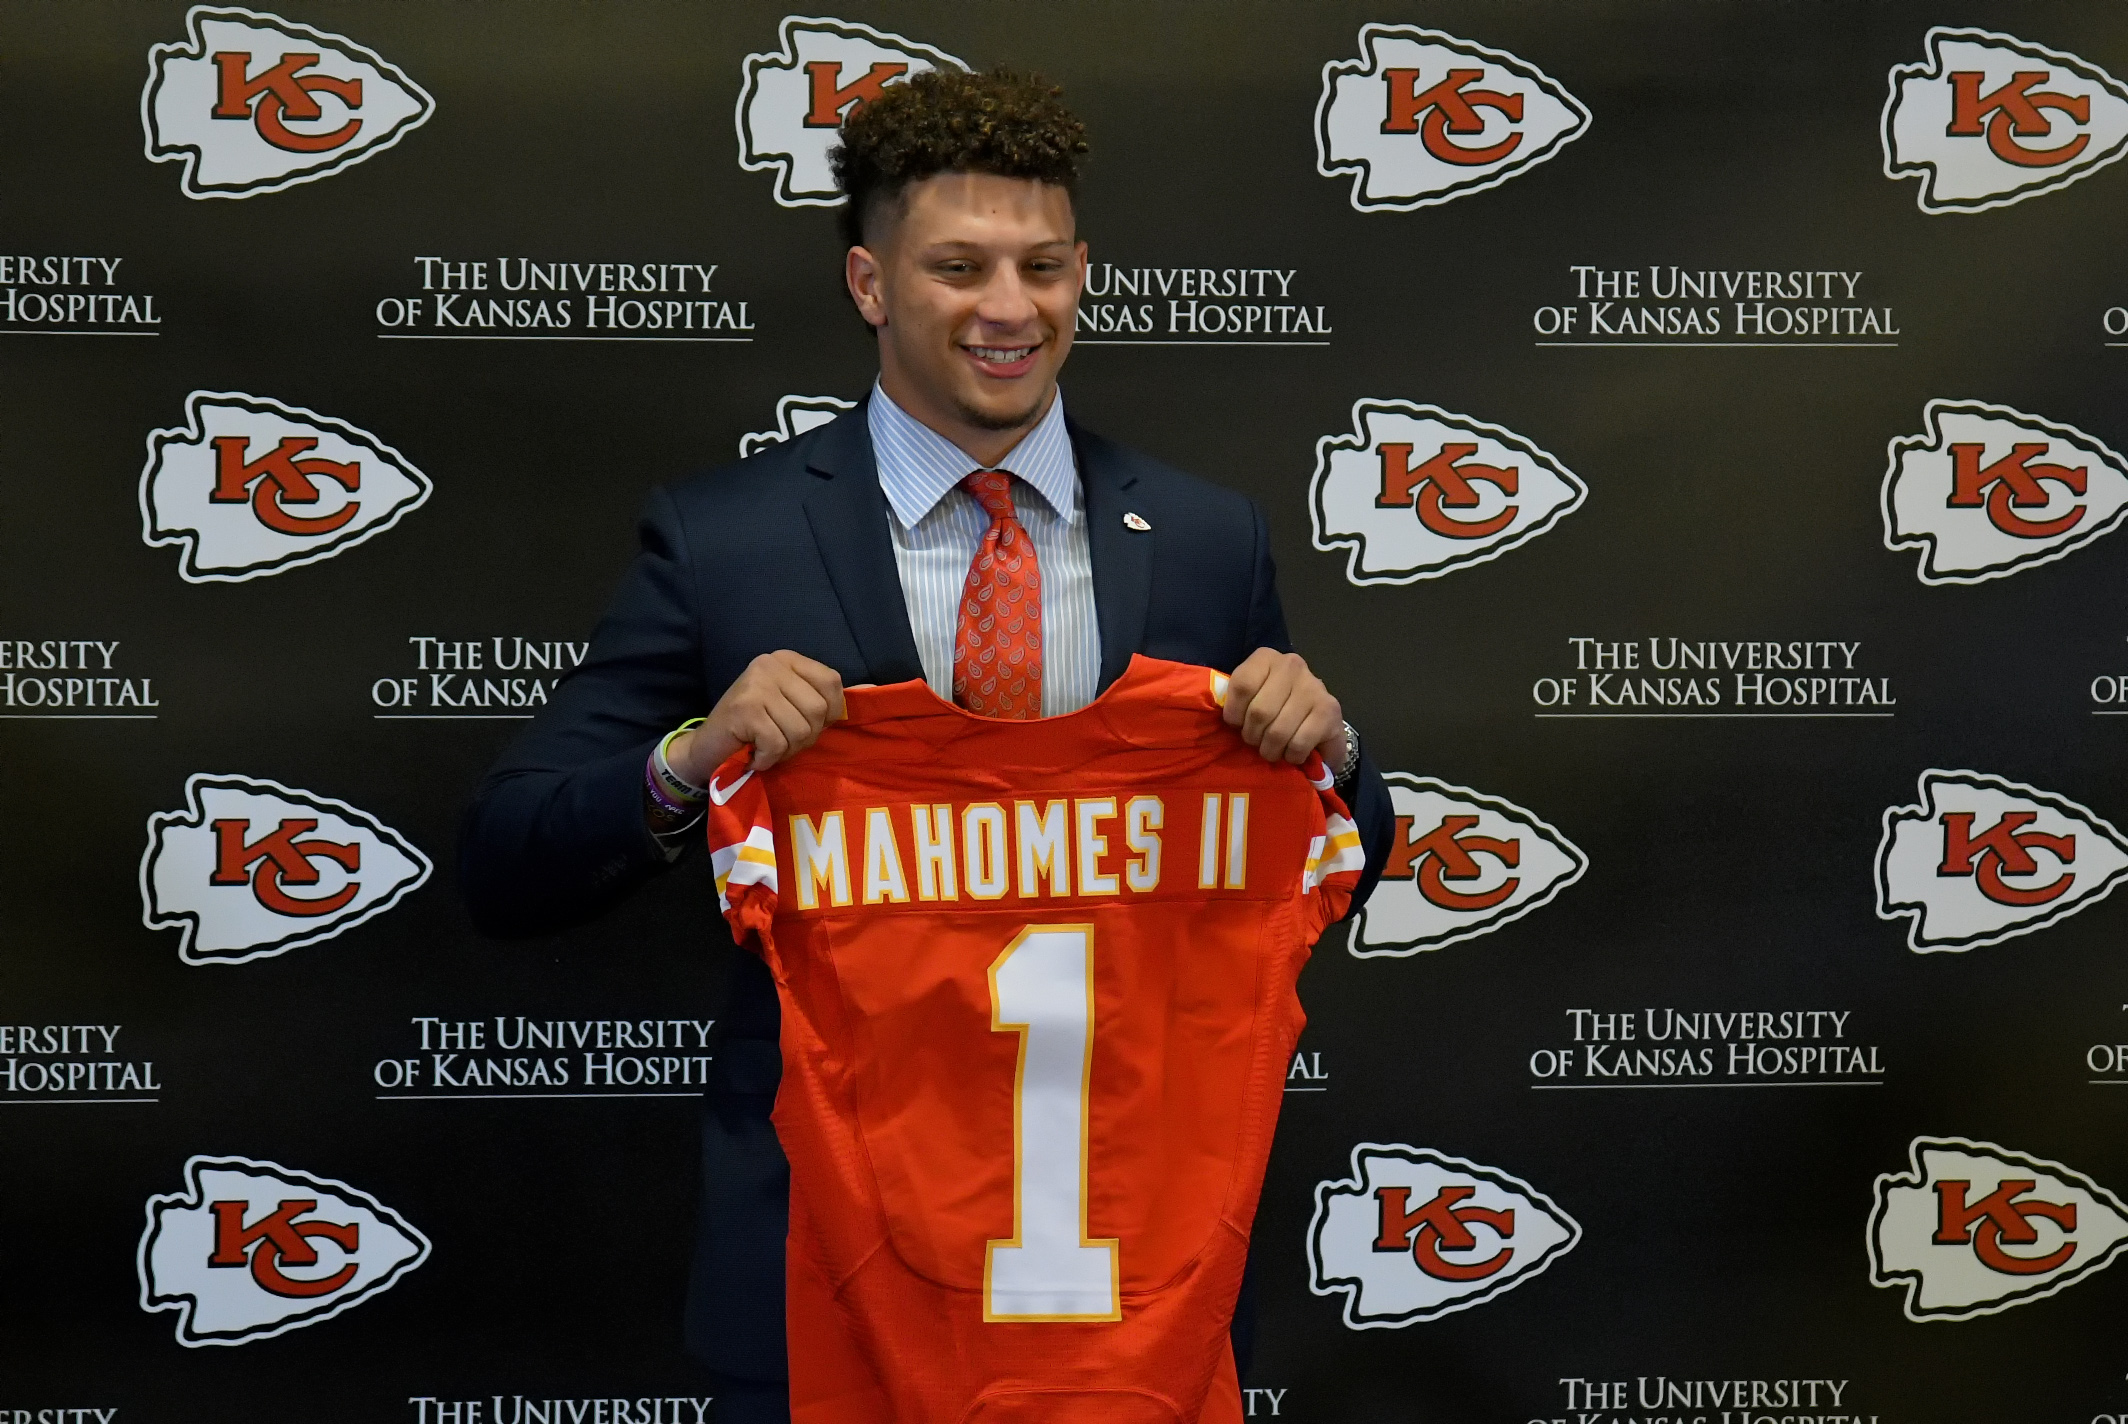 Patrick Mahomes selected by Kansas City Chiefs in NFL draft